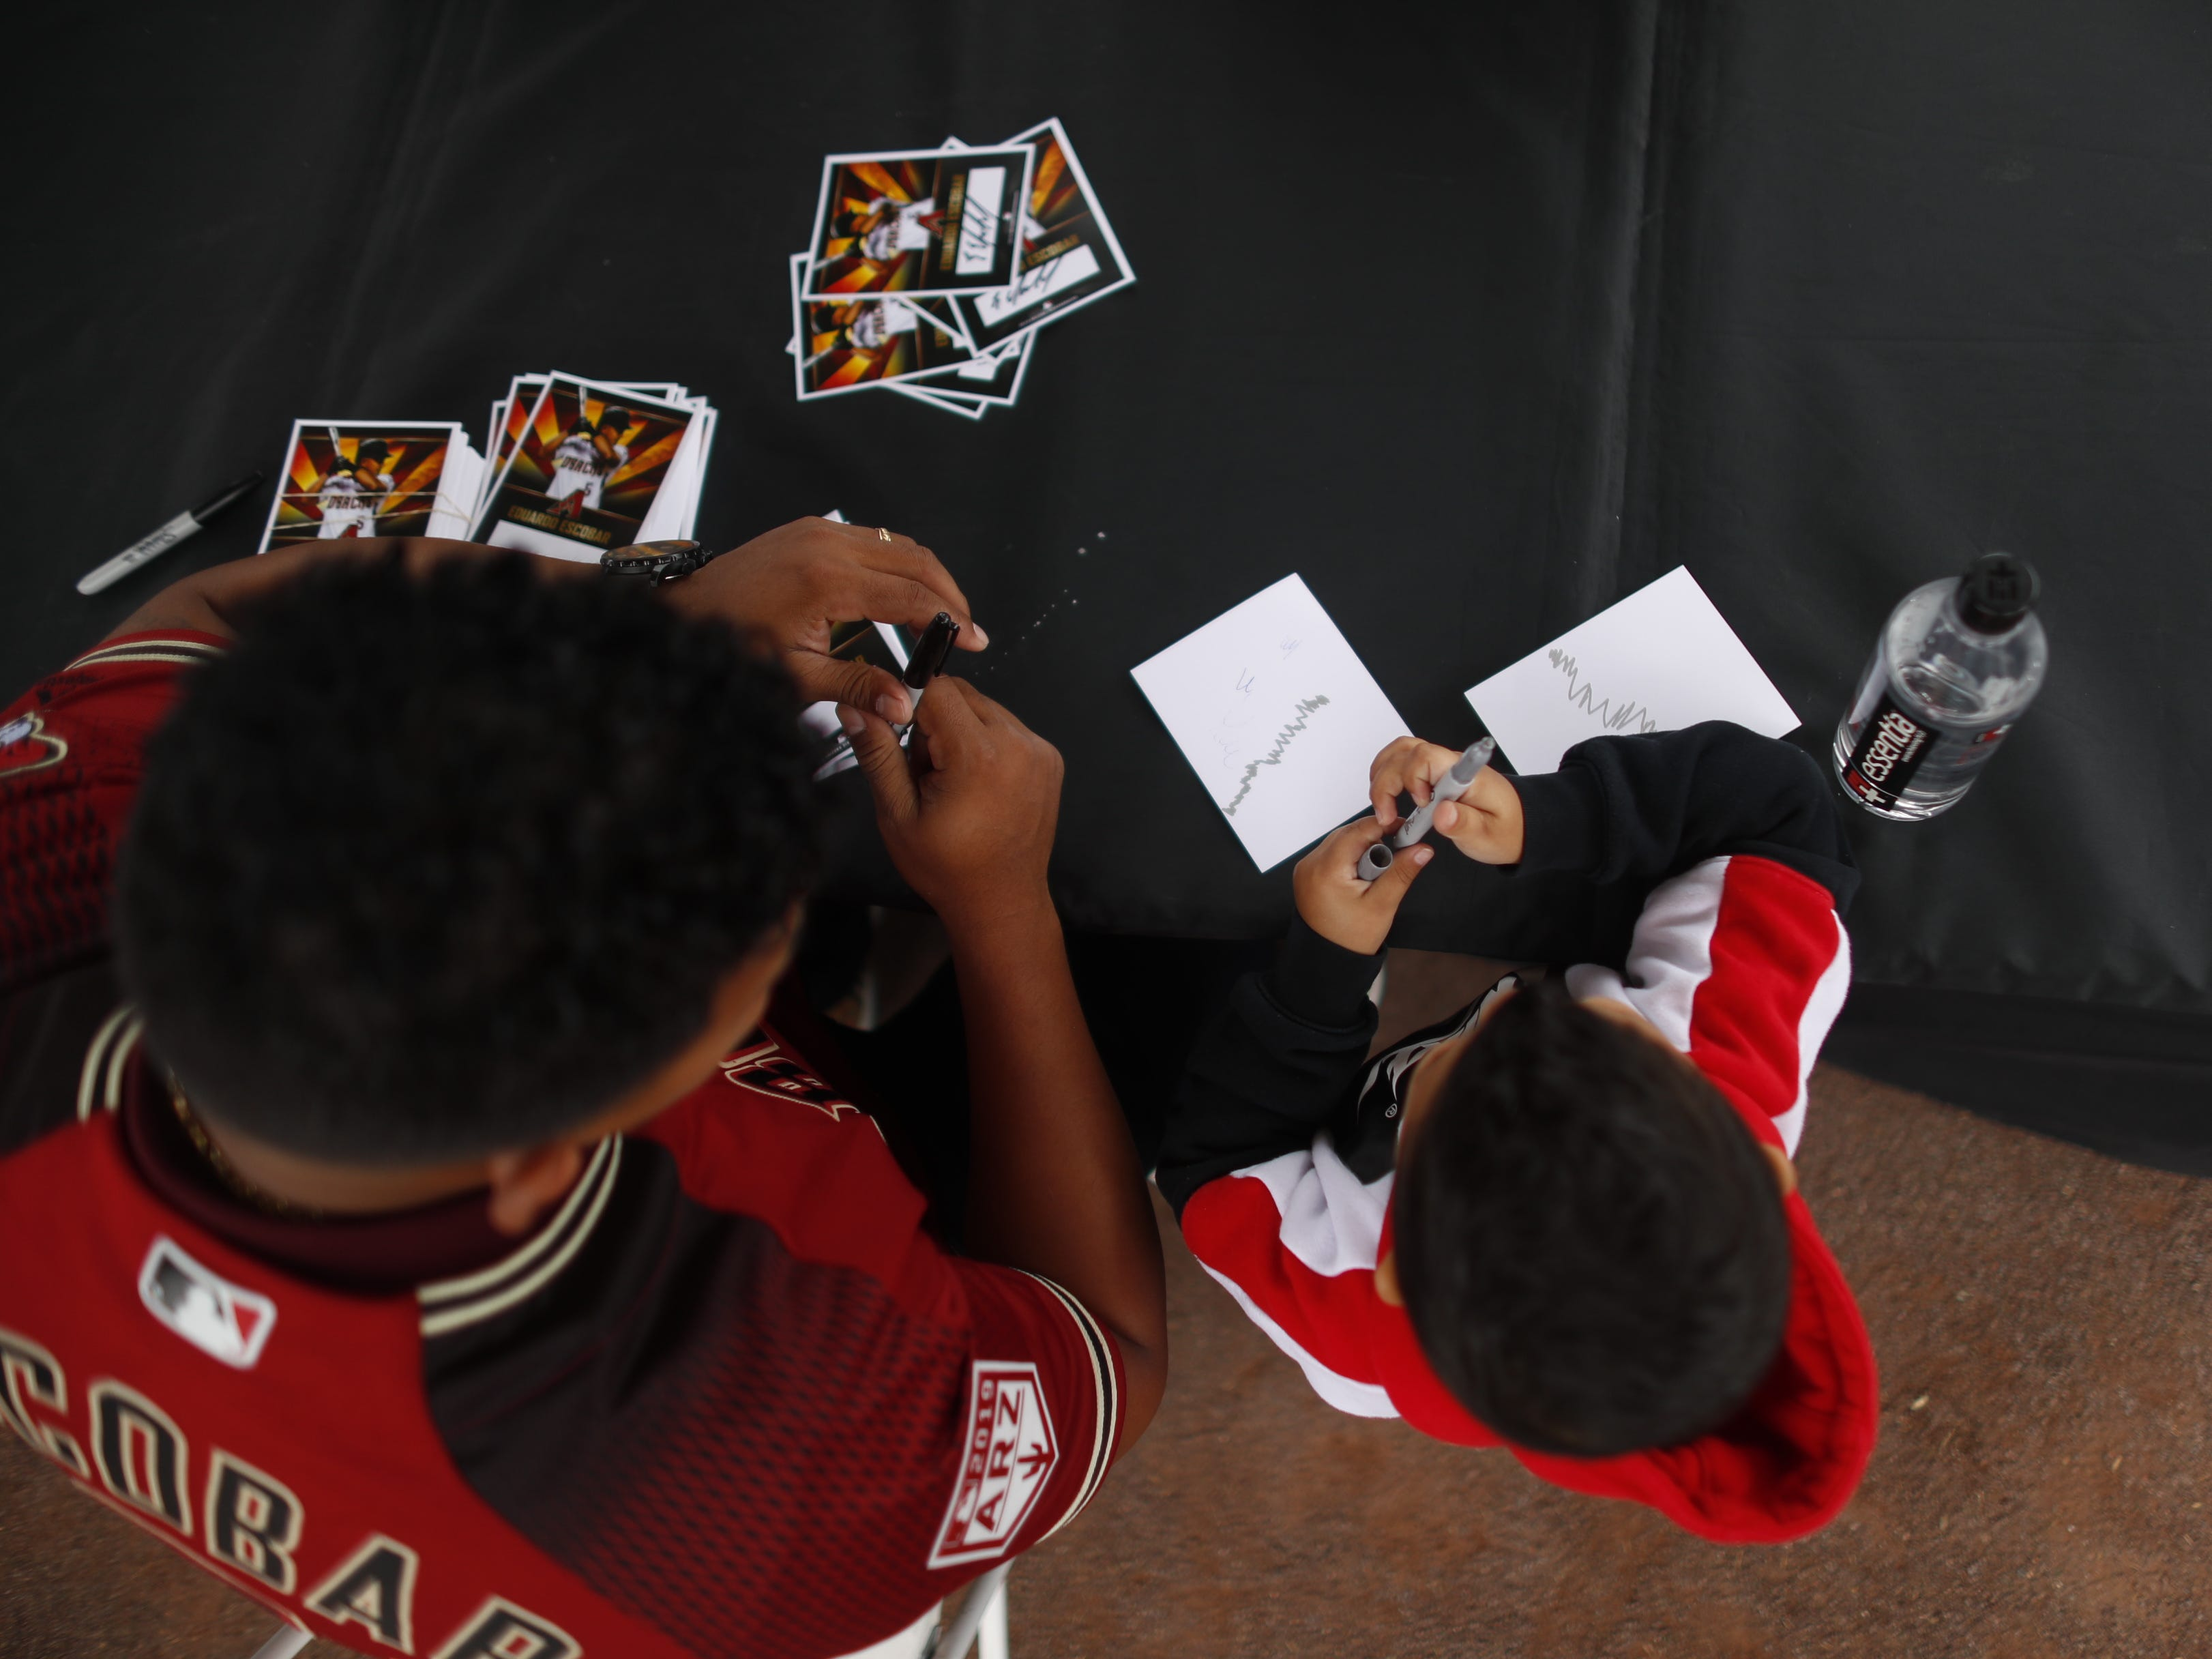 Eduardo Escobar (L) and his son Emmanuel Escobar sign autographs during the Diamondbacks Fan Fest at Salt River at Talking Sticks on February 9, 2019.